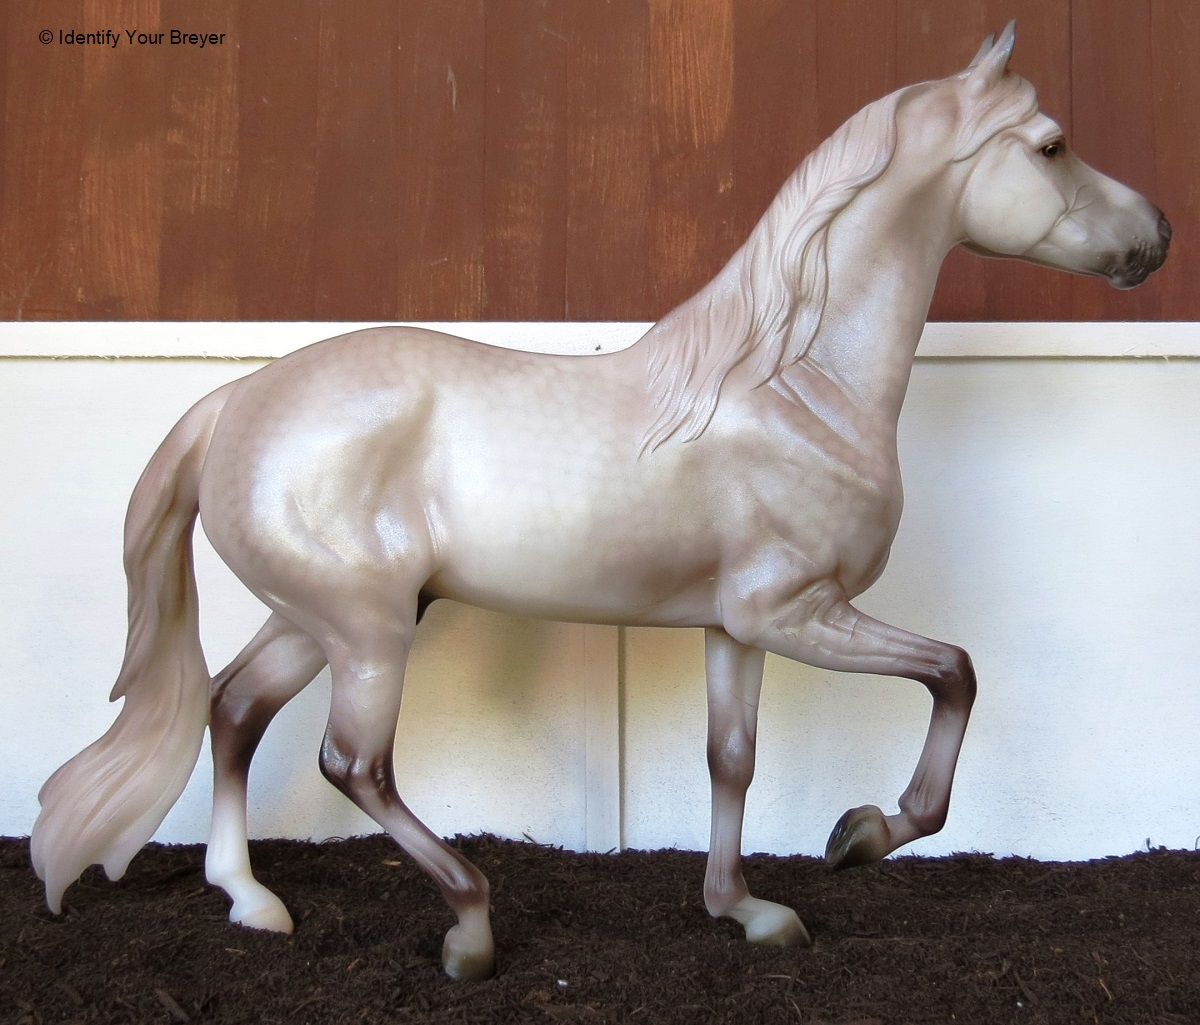 identify your breyer new breyer models for  711234